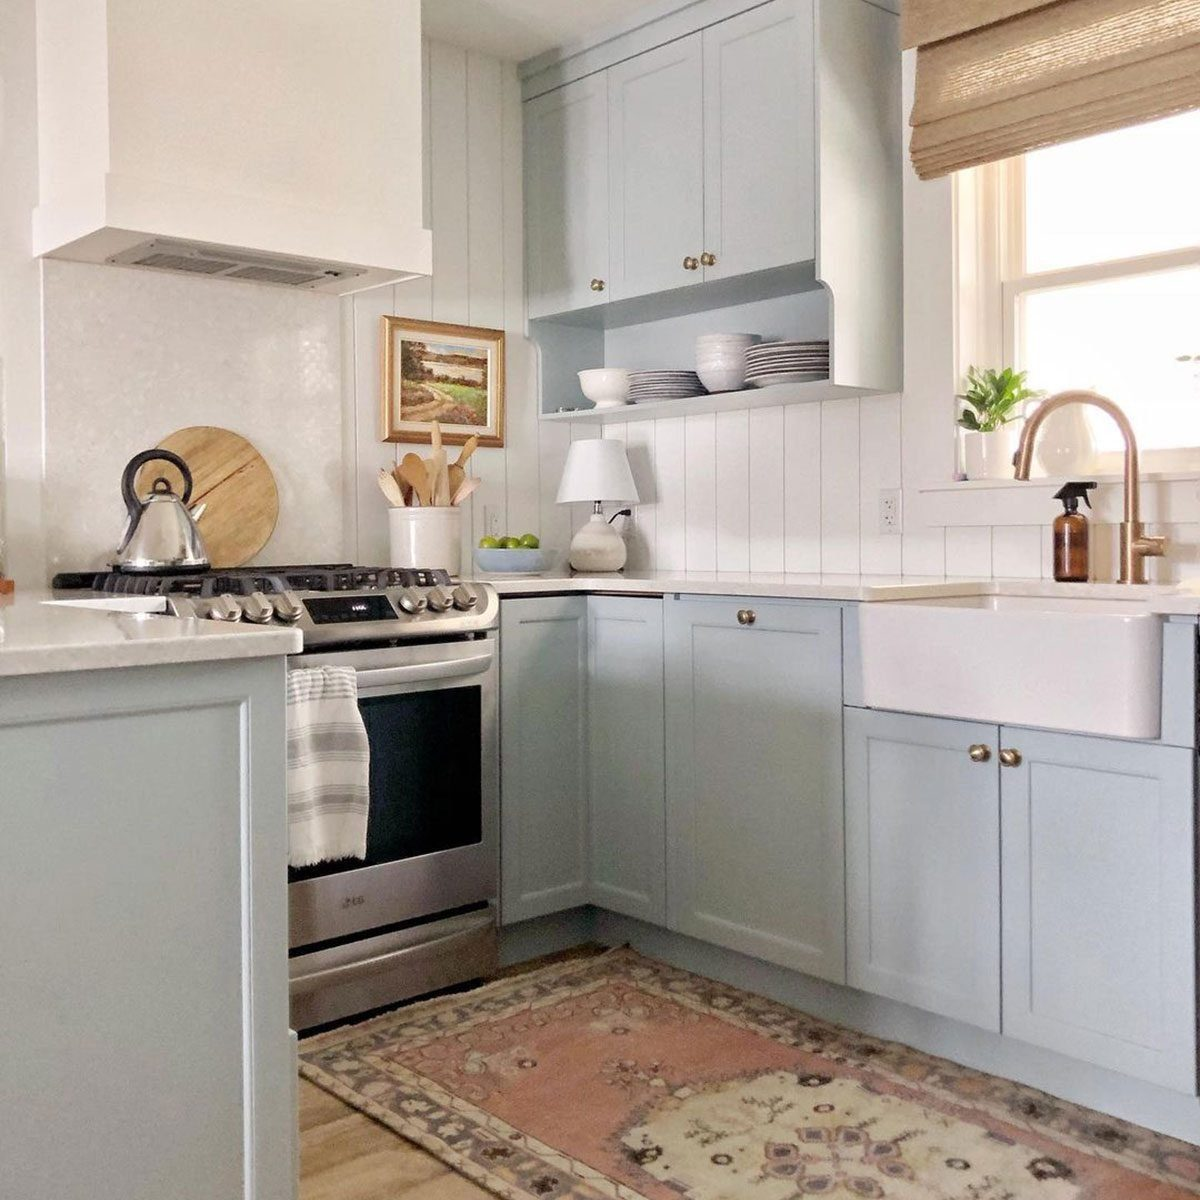 Kitchen with light blue cabinets